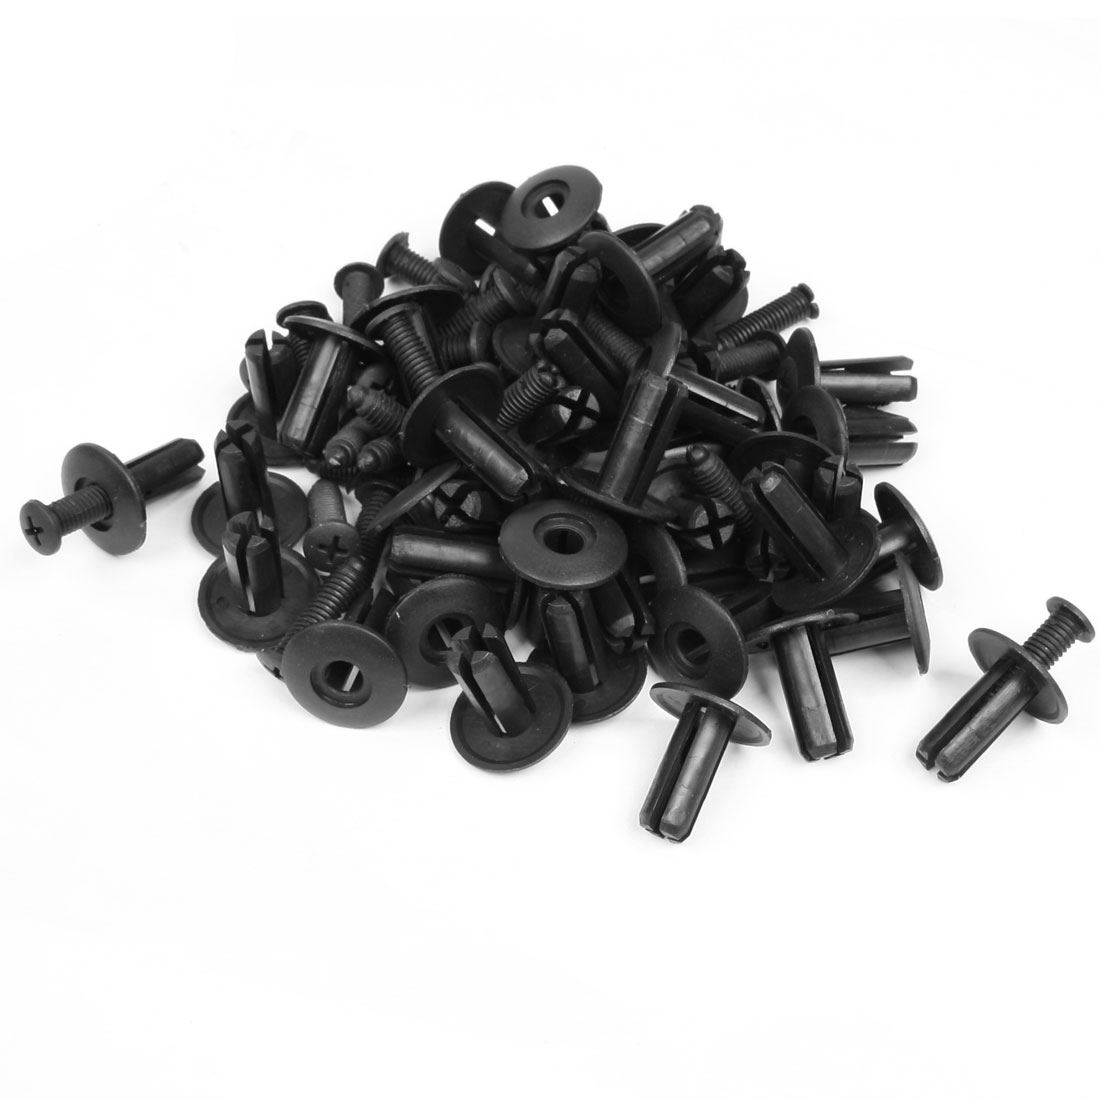 50 Pcs Black Plastic Rivet Retainer Door Trim Clips Fastener 8mm Hole for Car